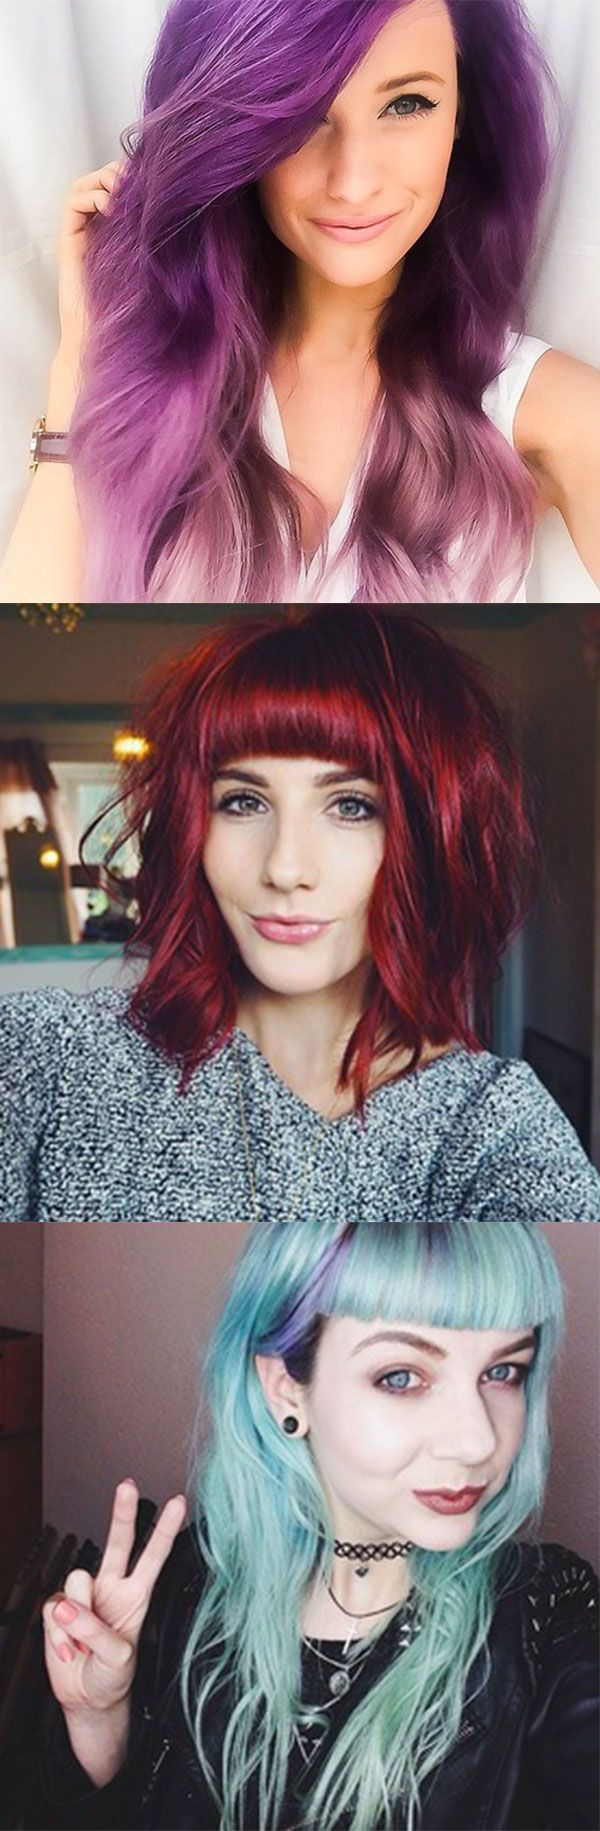 6 Brit bloggers with AMAZING bright hair <3 http://www.cosmopolitan.co.uk/beauty-hair/hair/a35864/bright-hair-colour-inspiration/